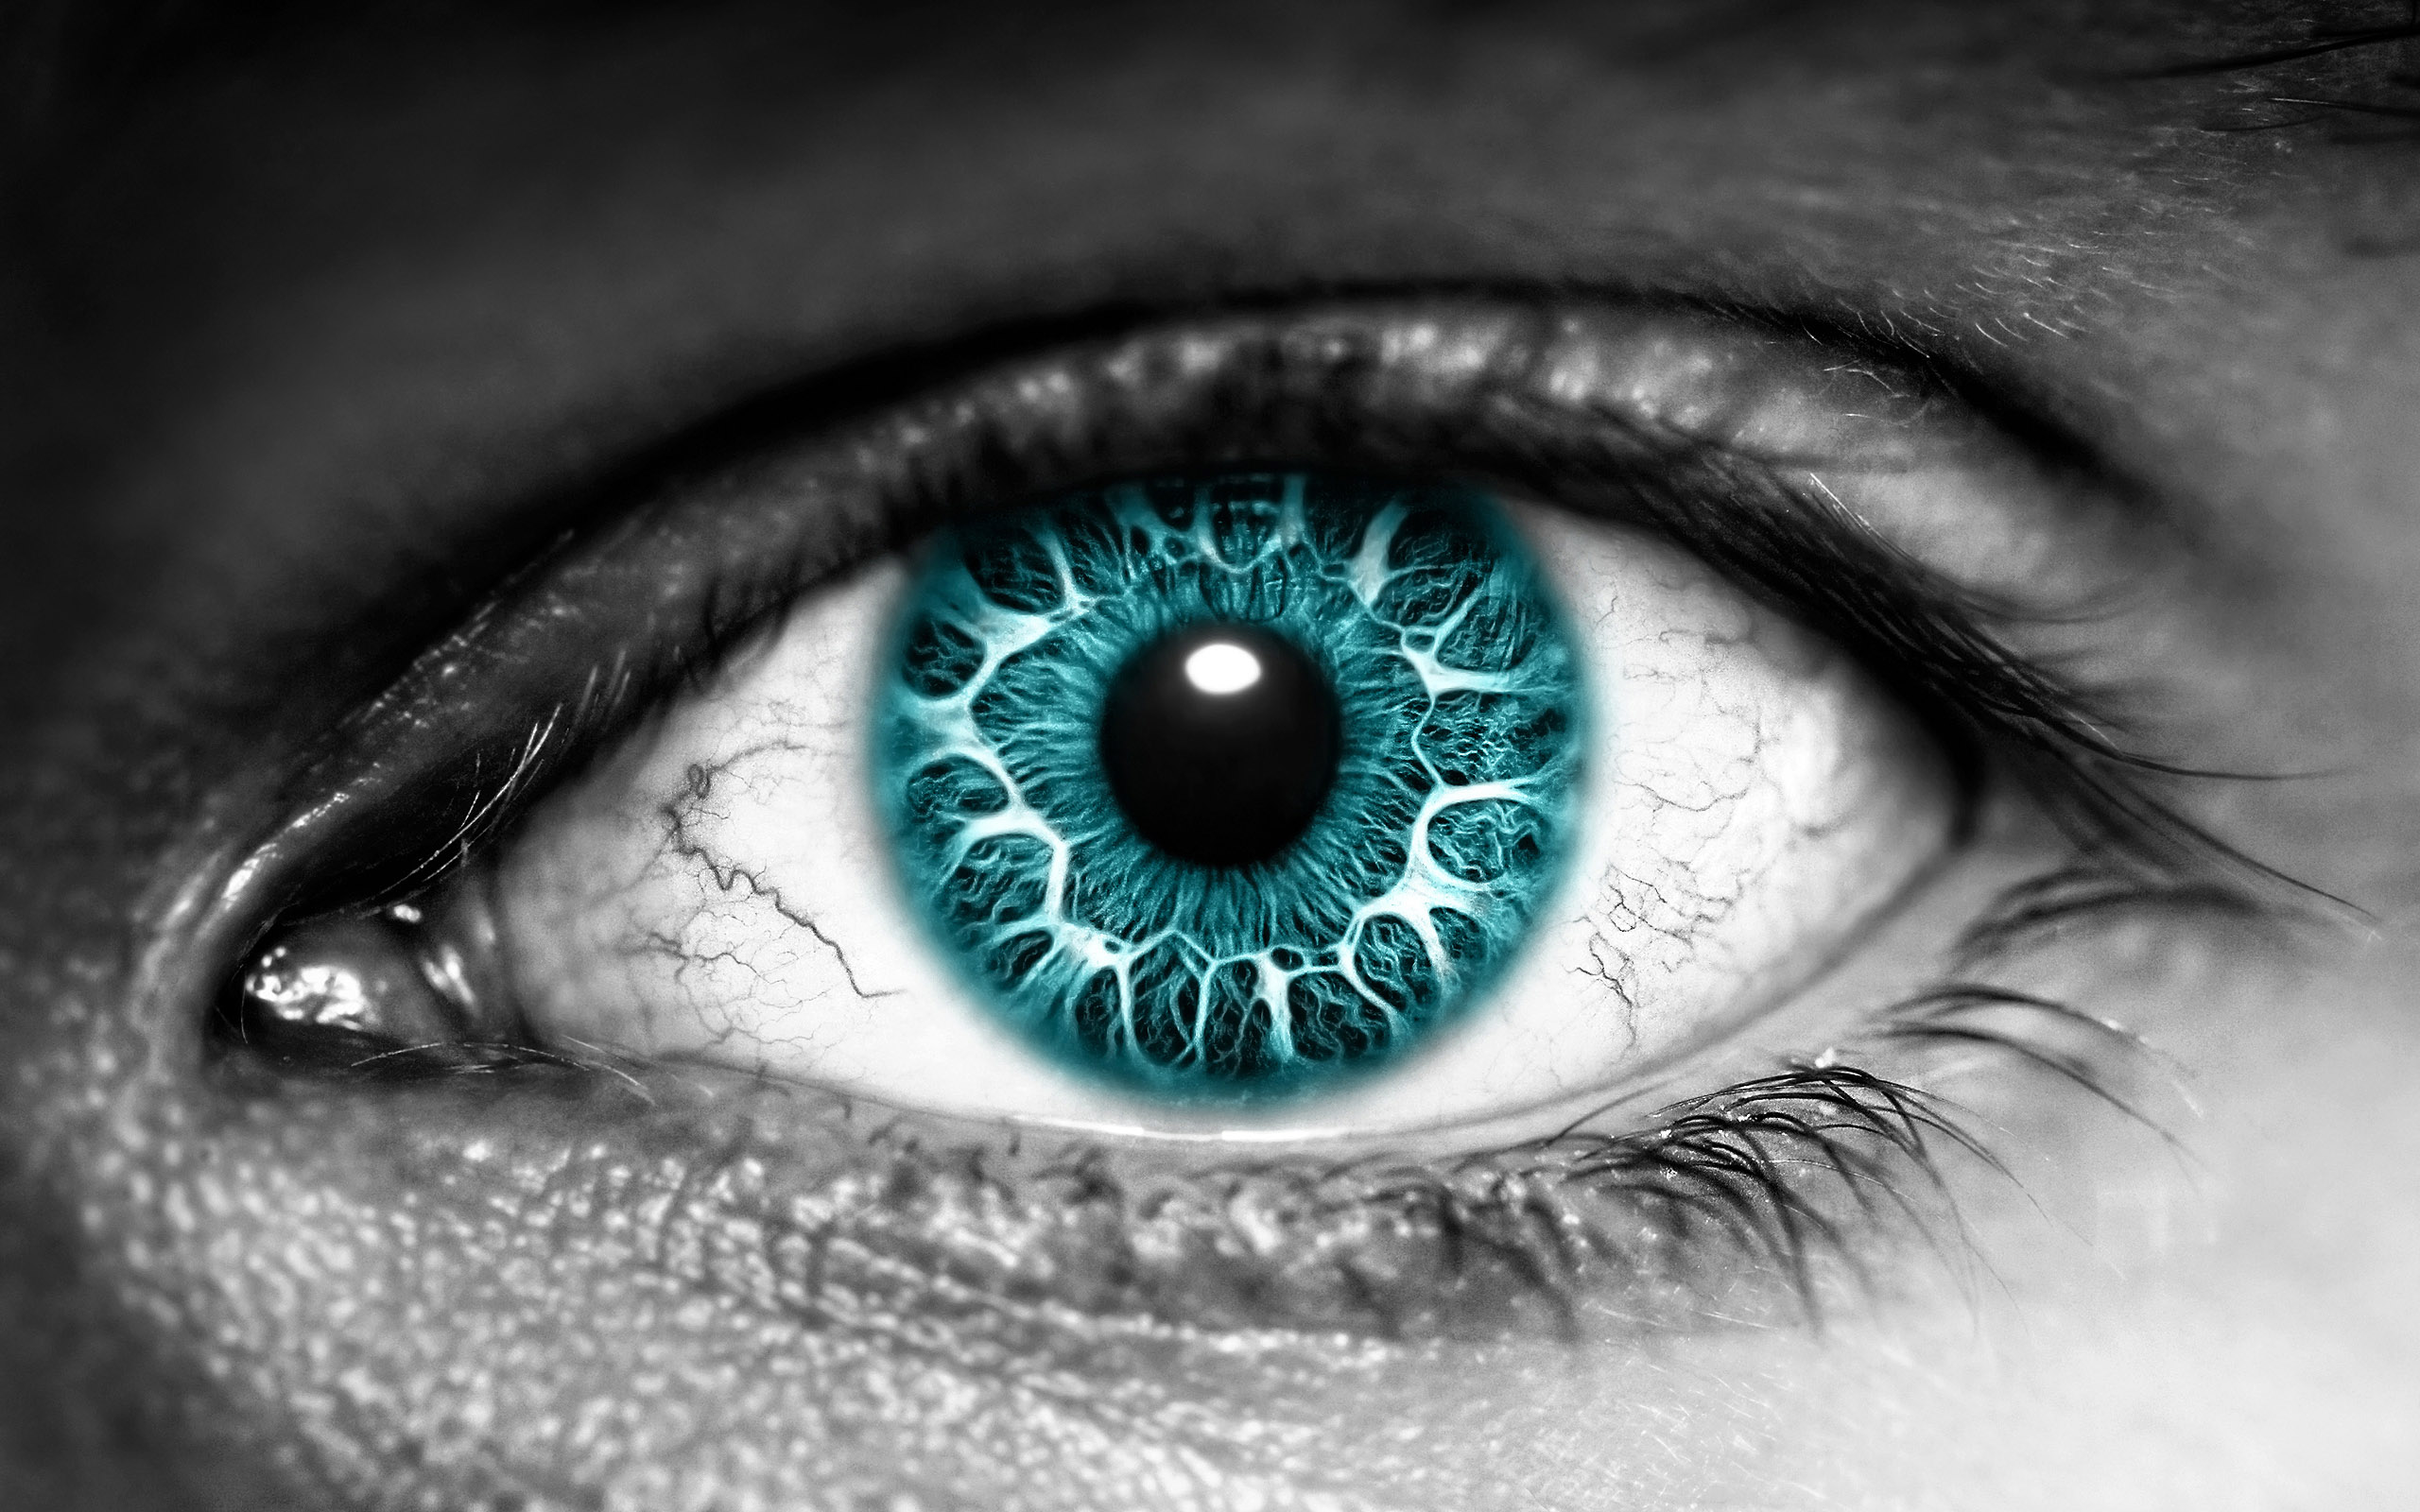 Everyone loves a good eye photograph, and this one is no exception, The post processing in Photoshop have really helped to bring out exciting details within the Iris.